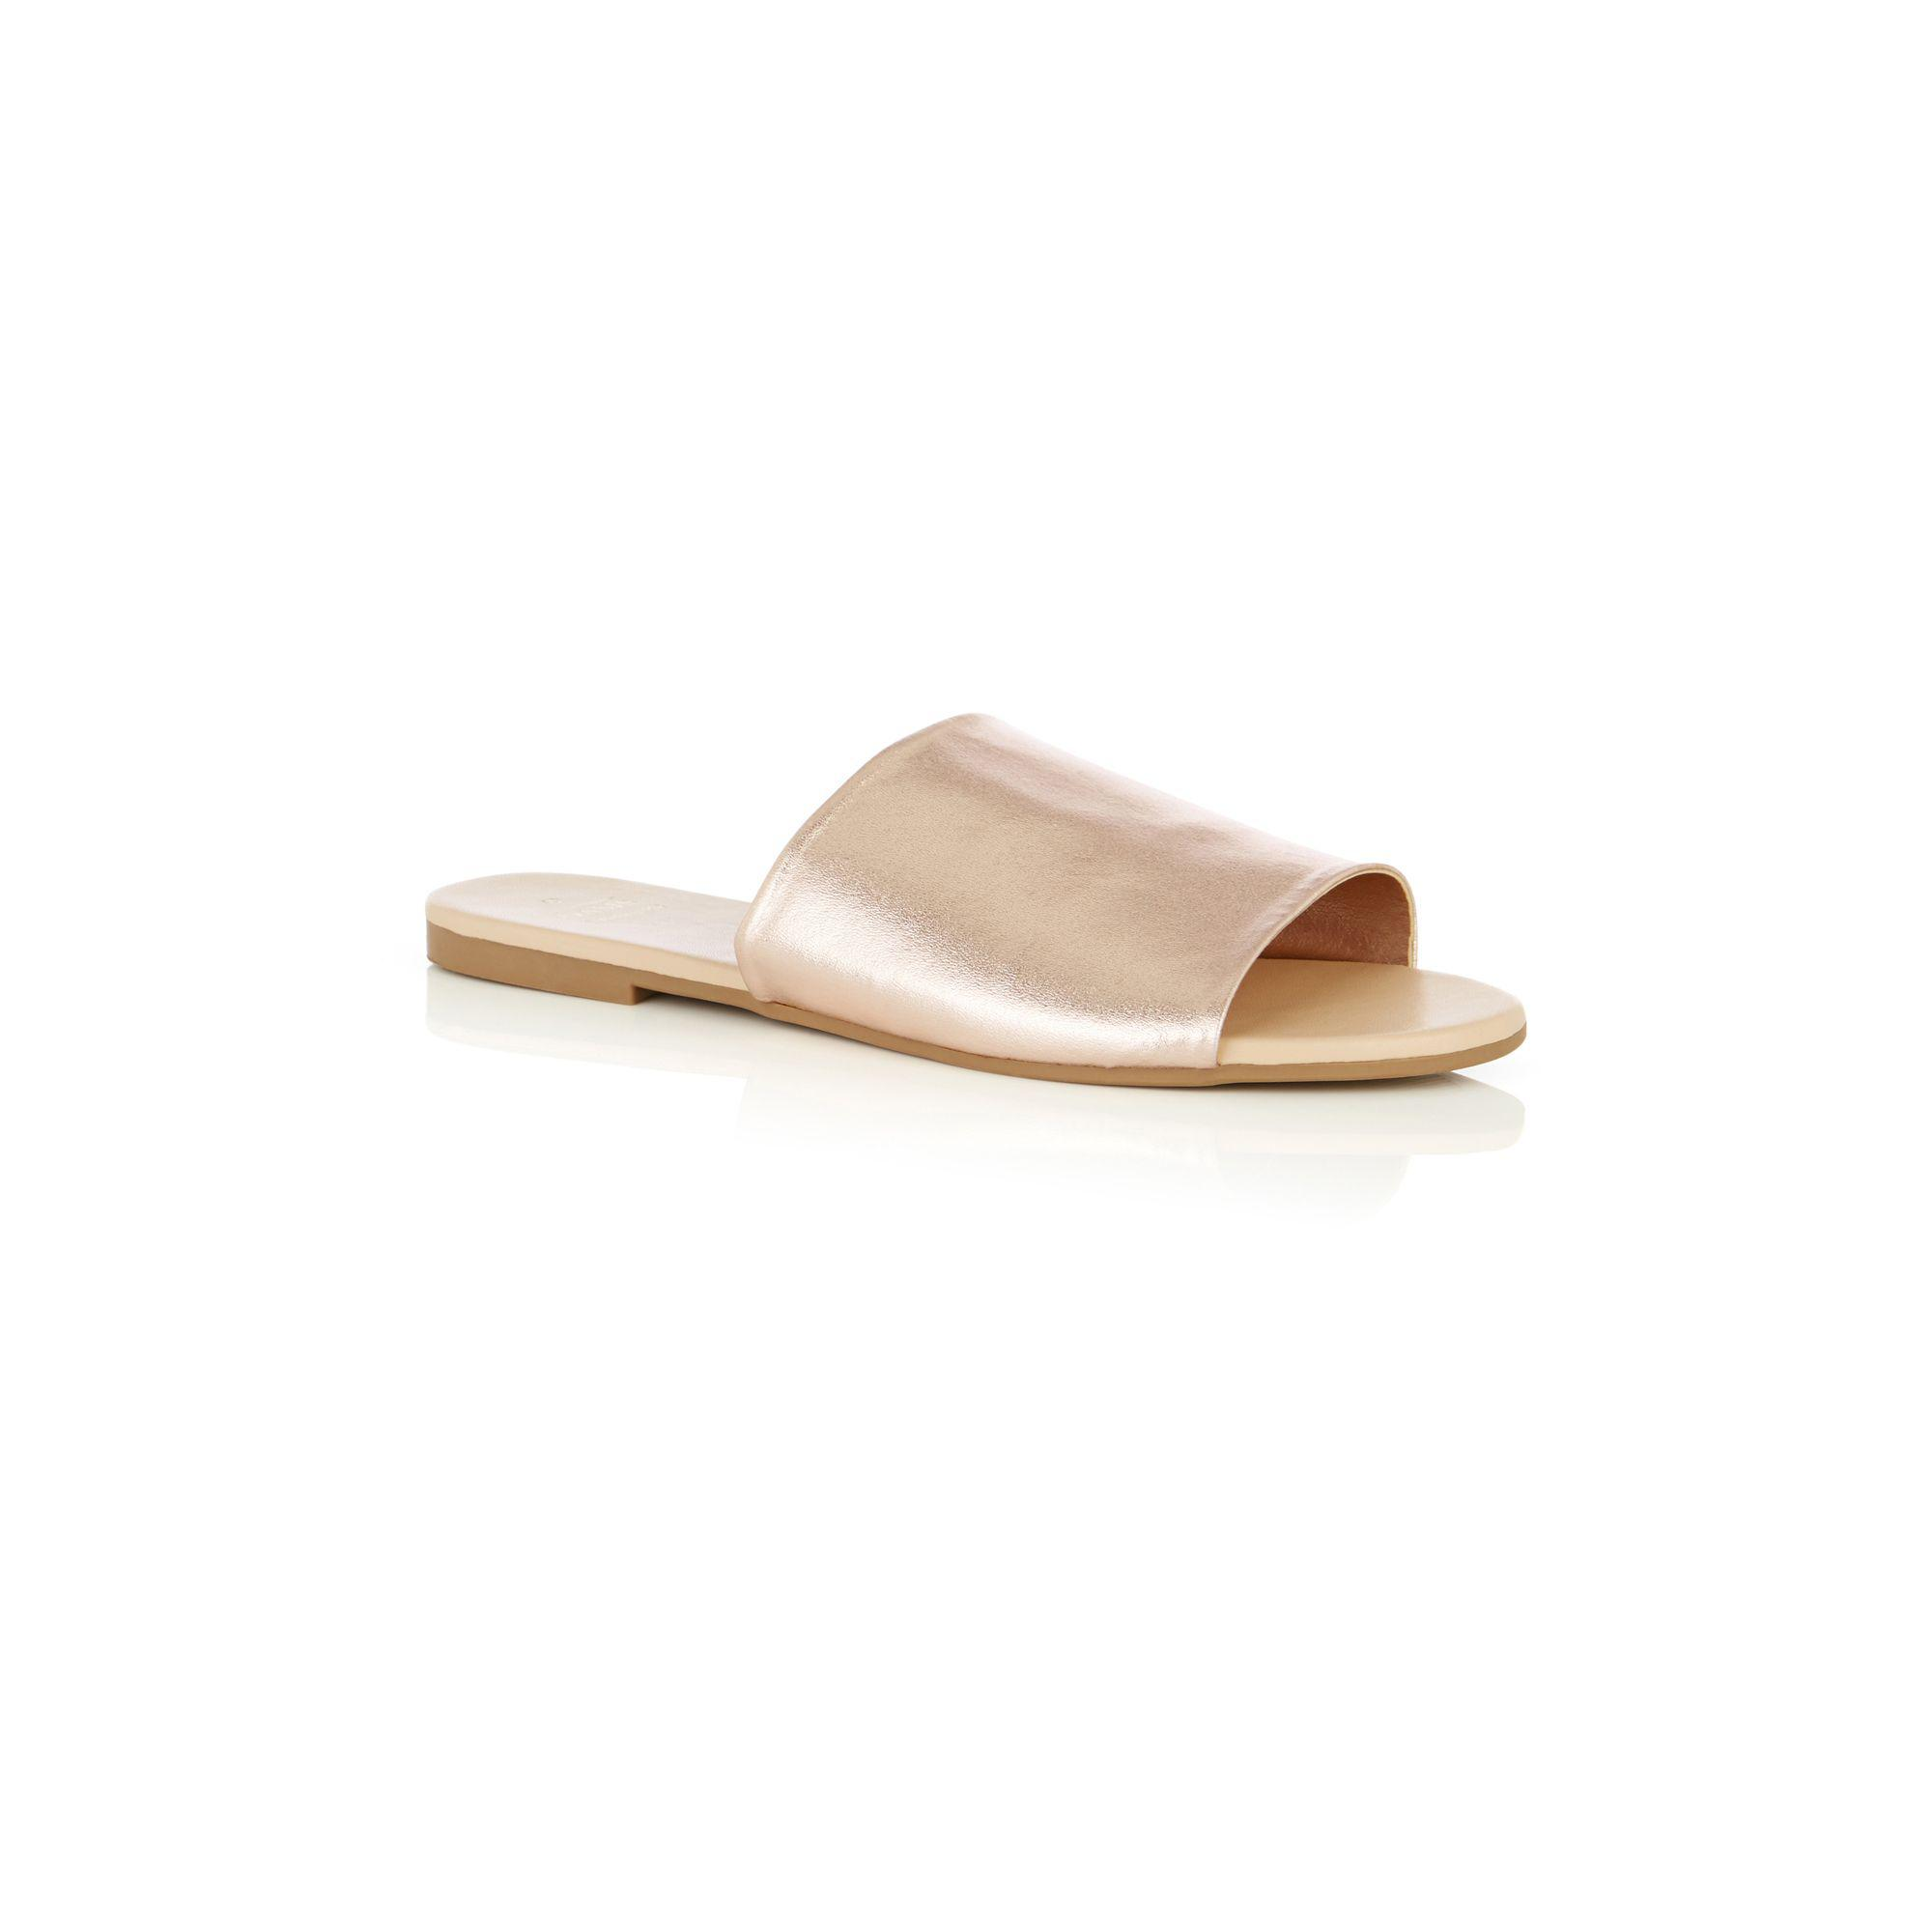 59b38c64fc27 Oasis Rose Gold Leather 'lola' Mules in Metallic - Lyst